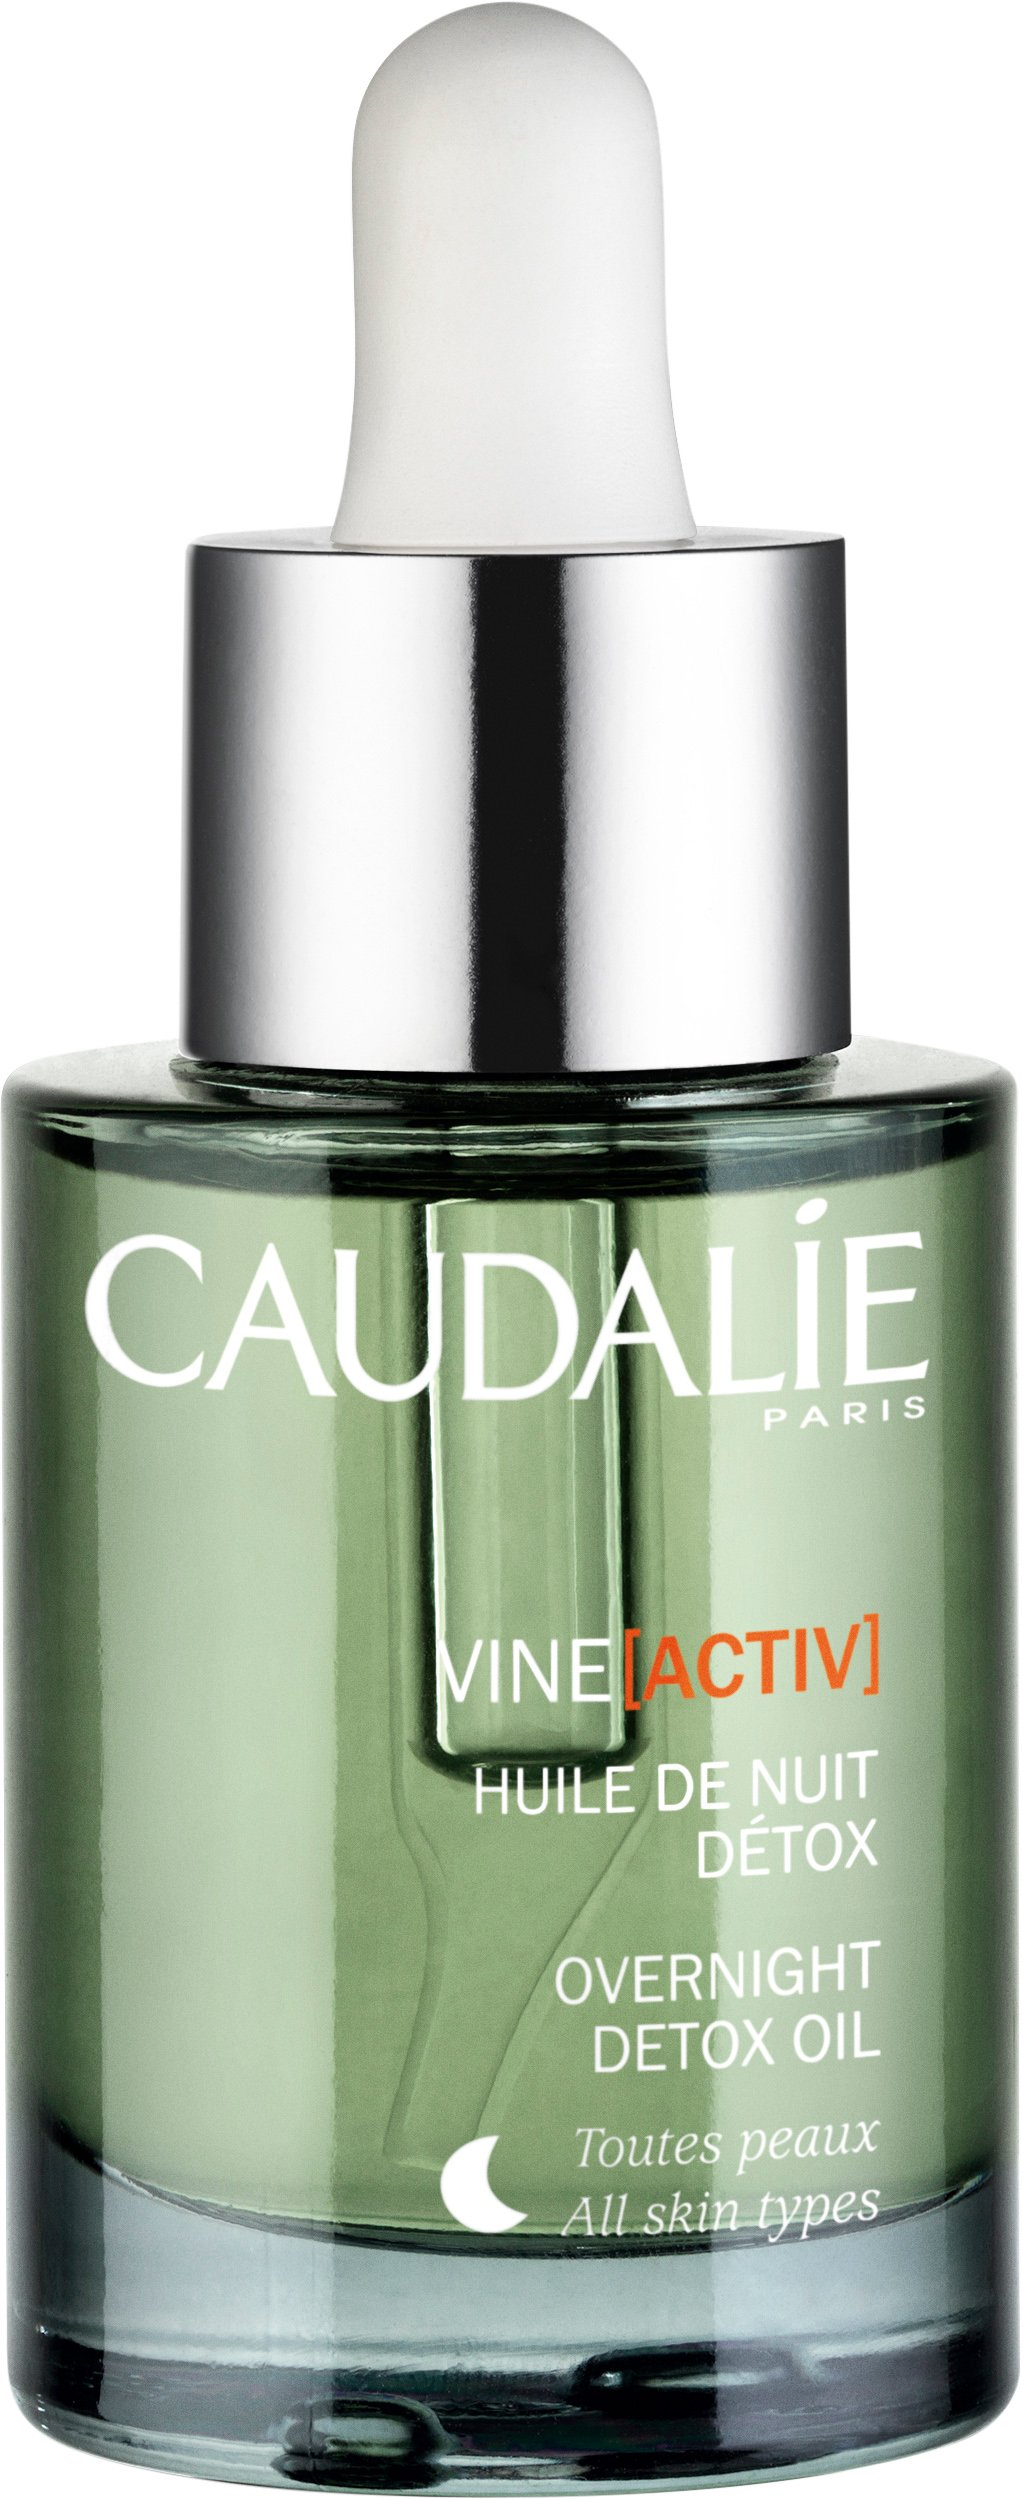 Caudalie - VineActiv Overnight Detox Oil 30 ml